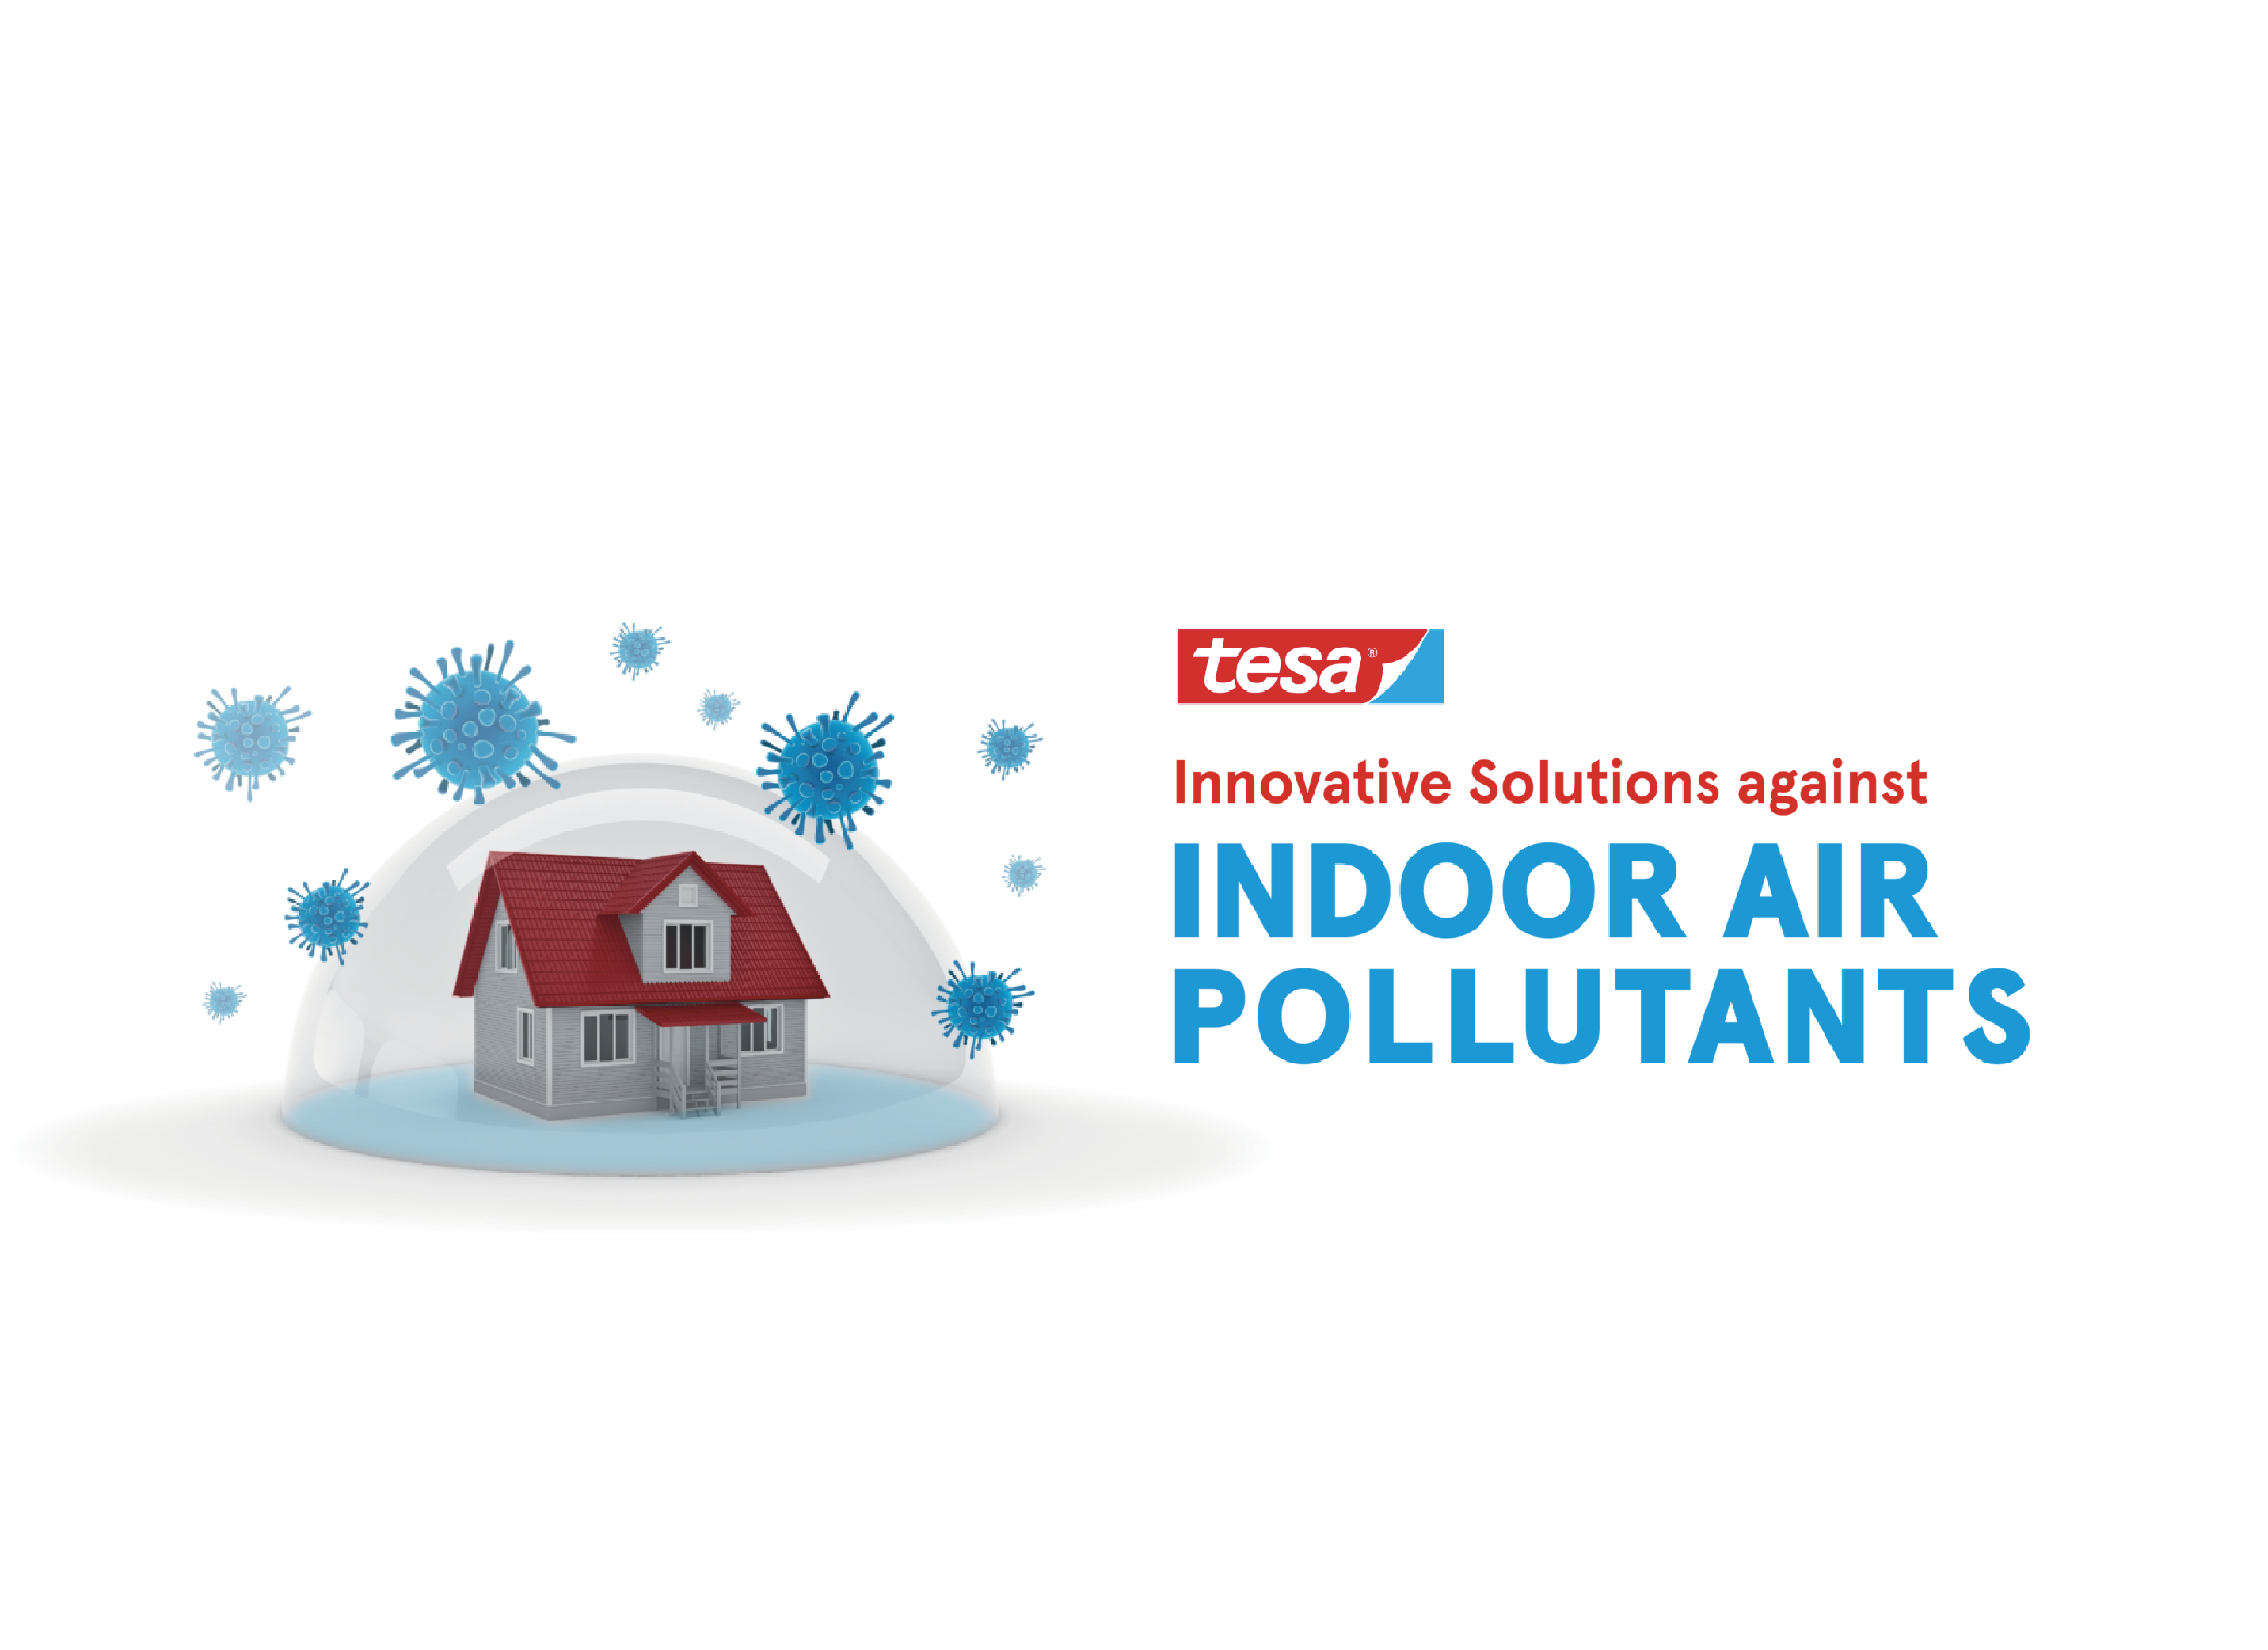 tesa – Innovative Solutions against Indoor Air Pollutants